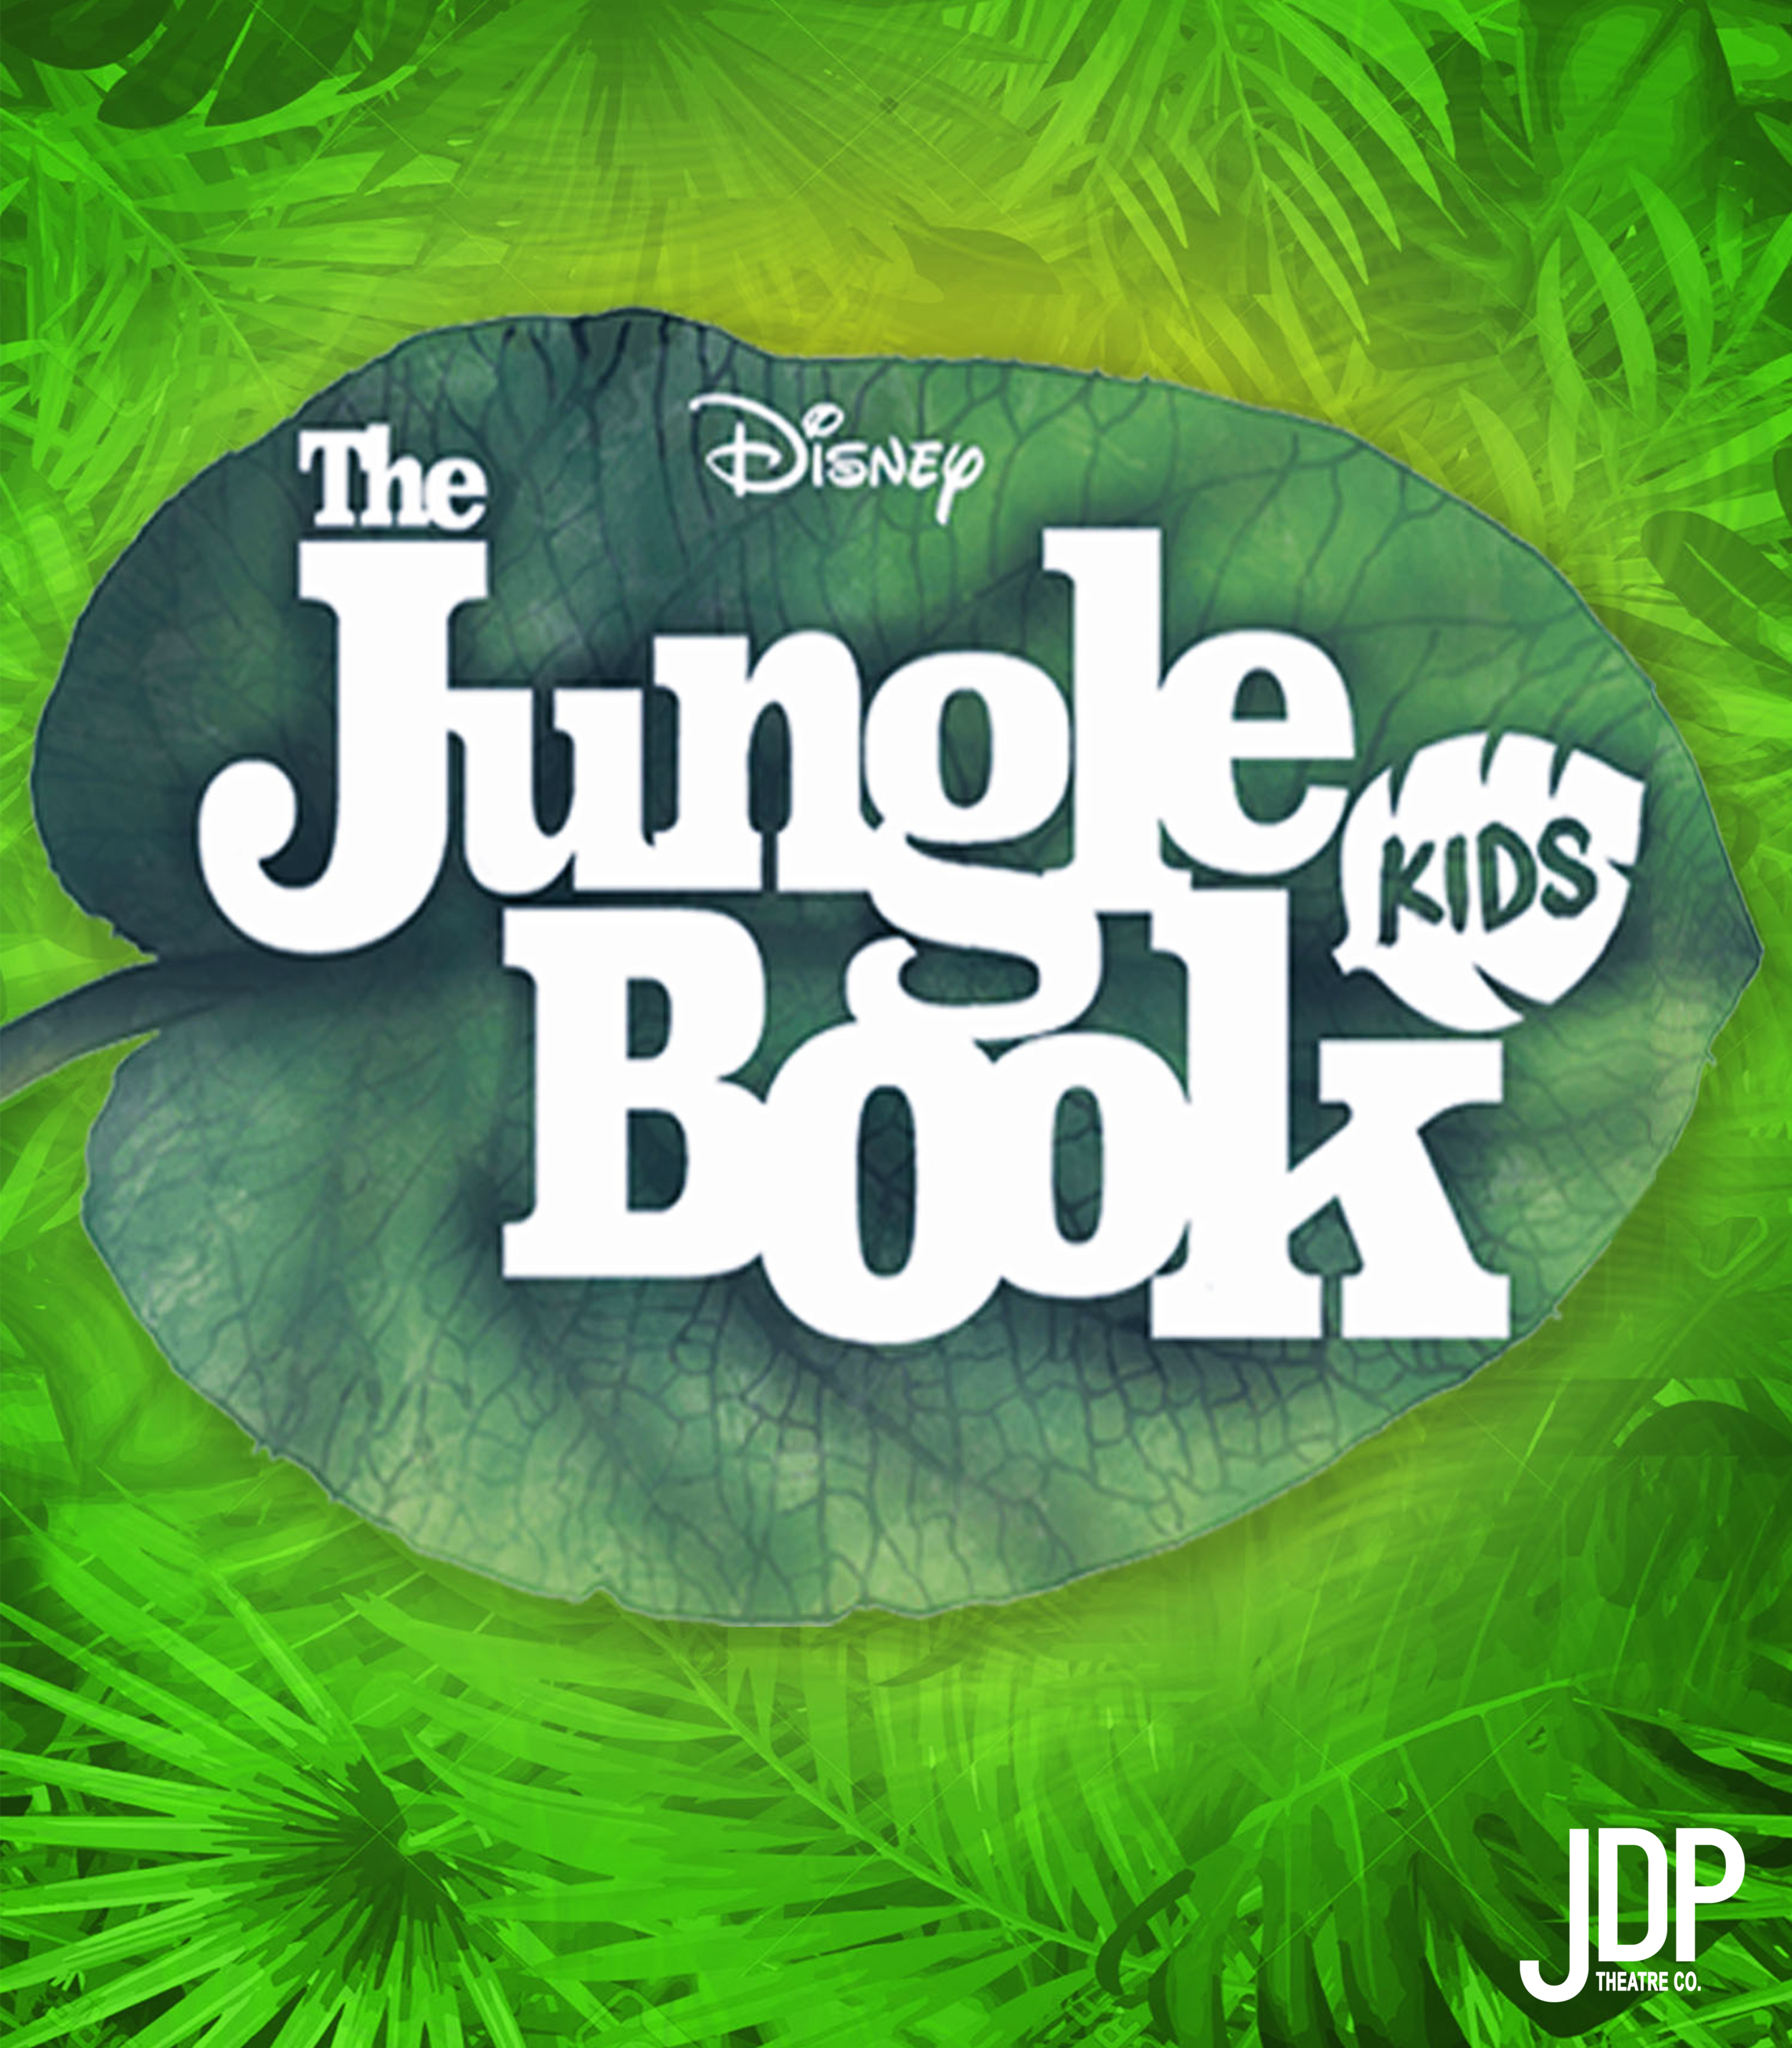 jungle book (logo and background).png